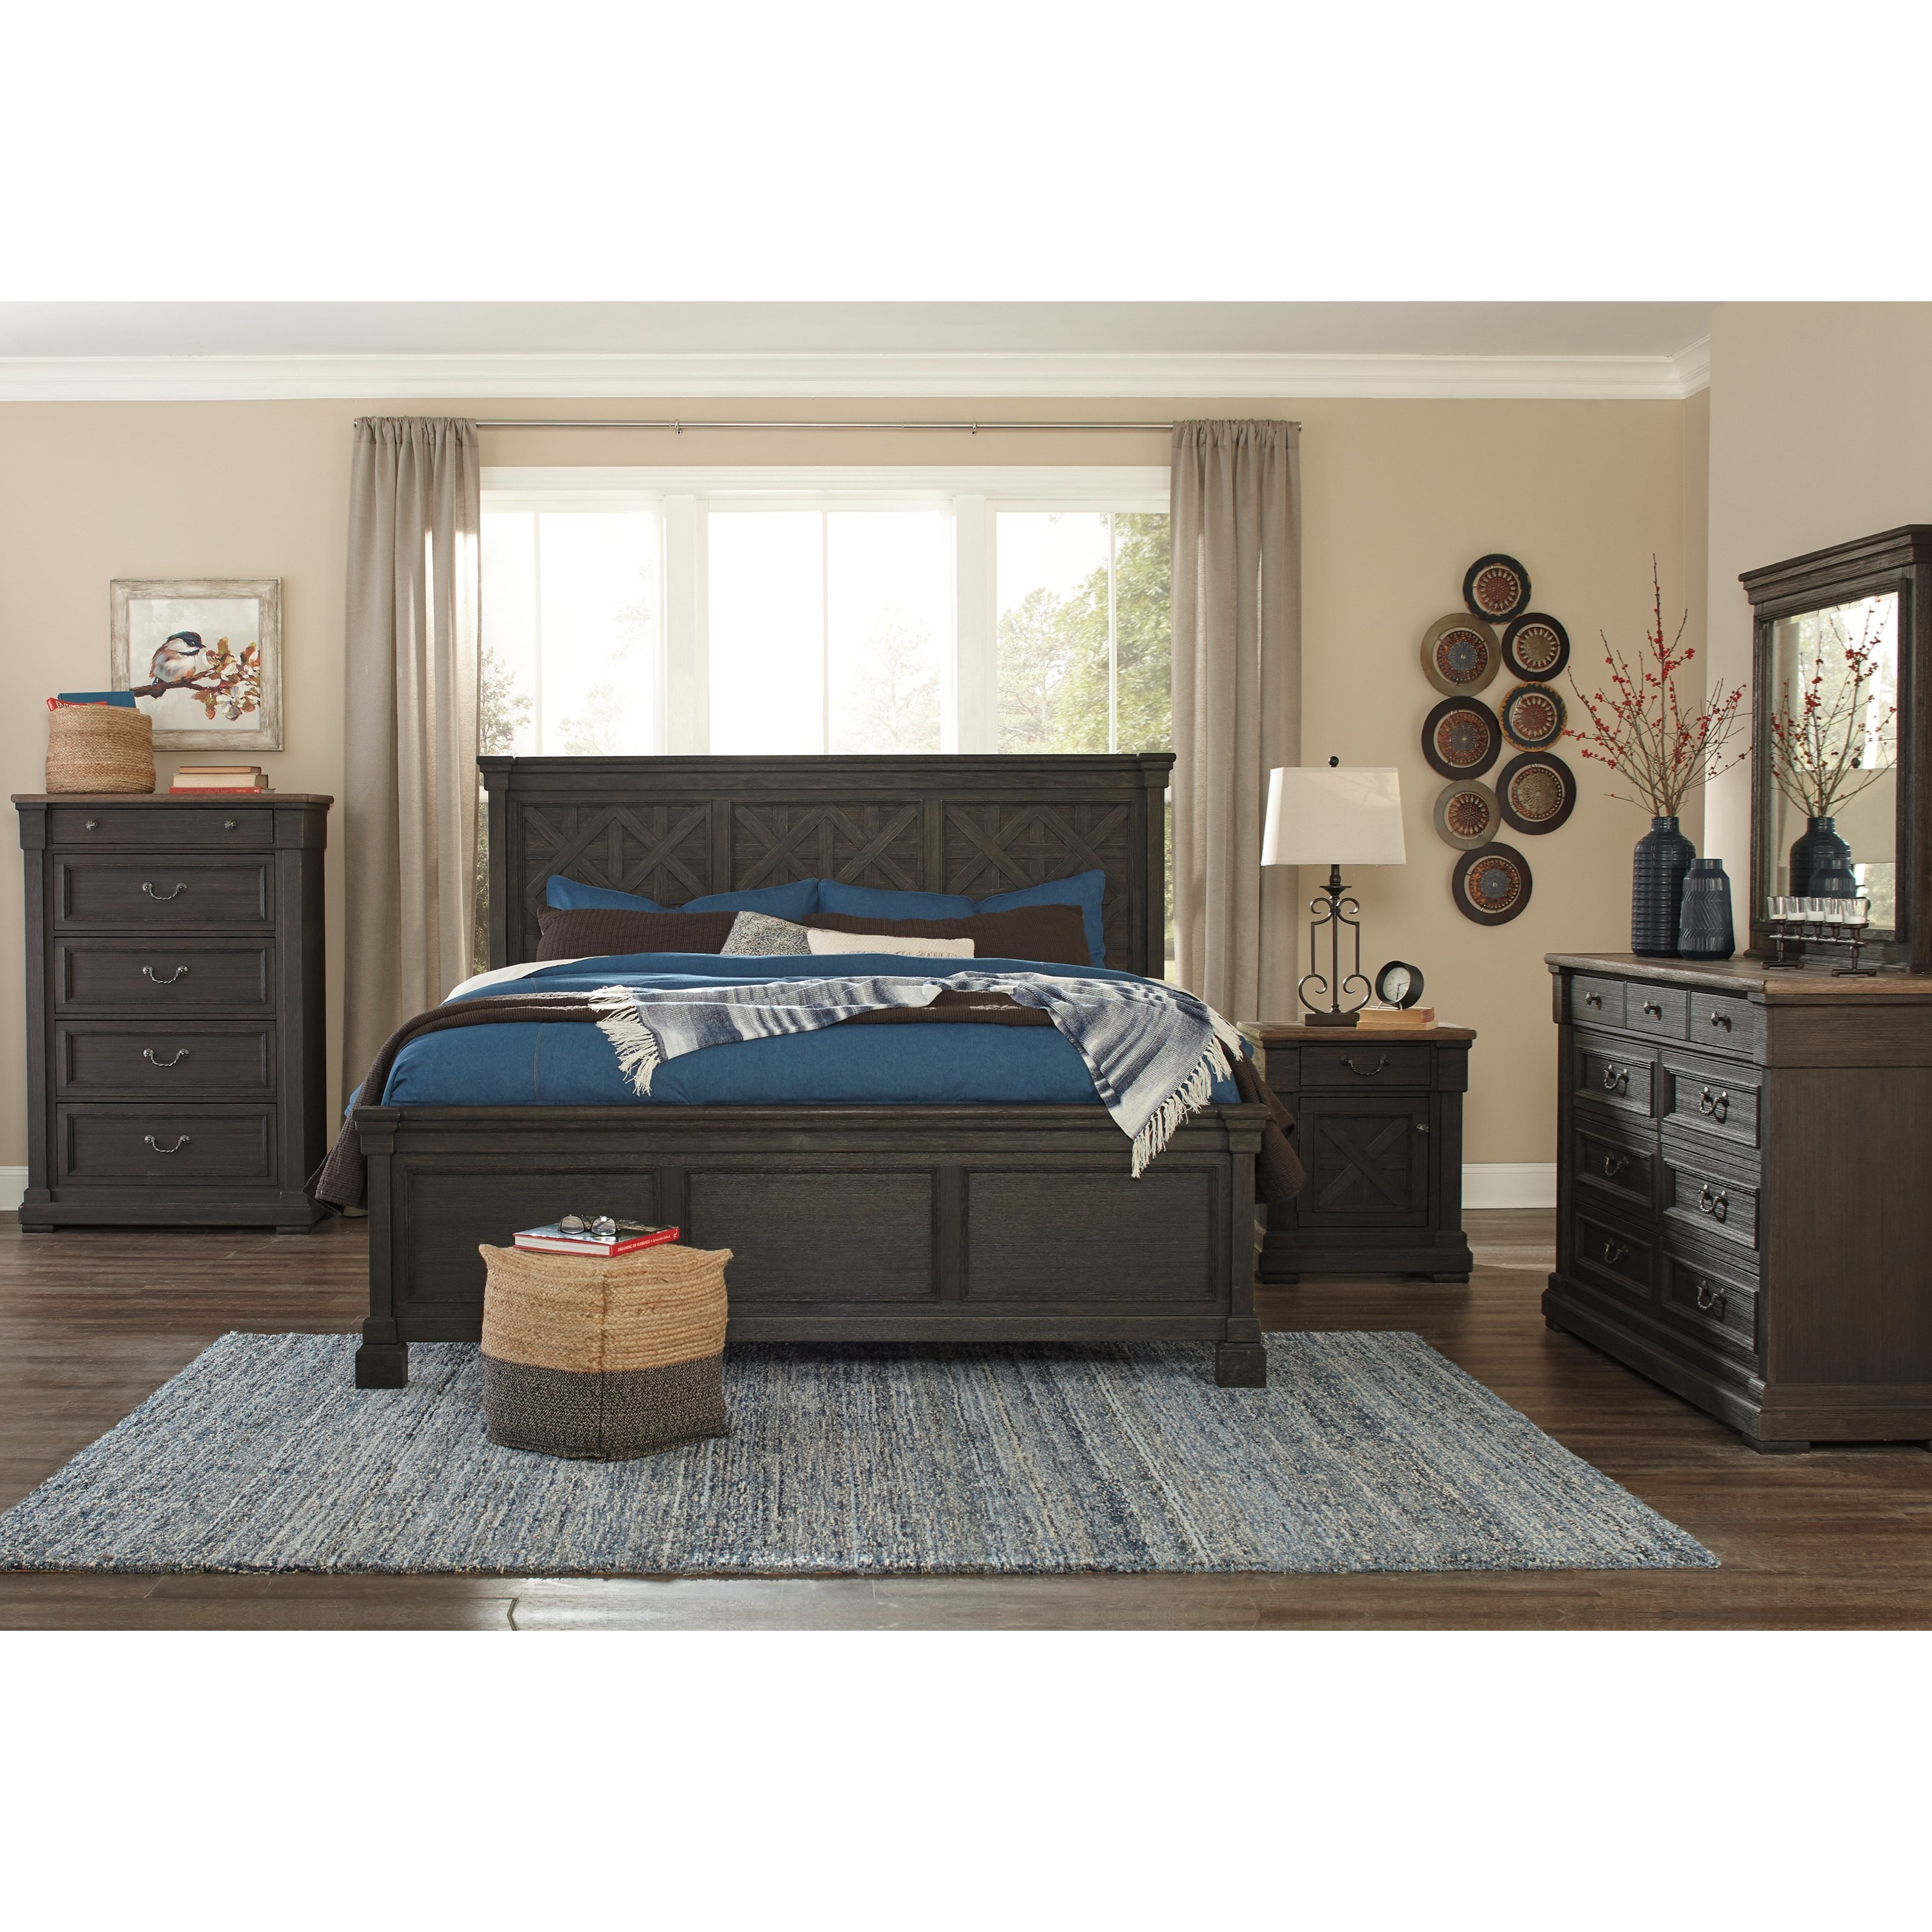 Genial Signature Design By Ashley Tyler CreekKing Bedroom Group